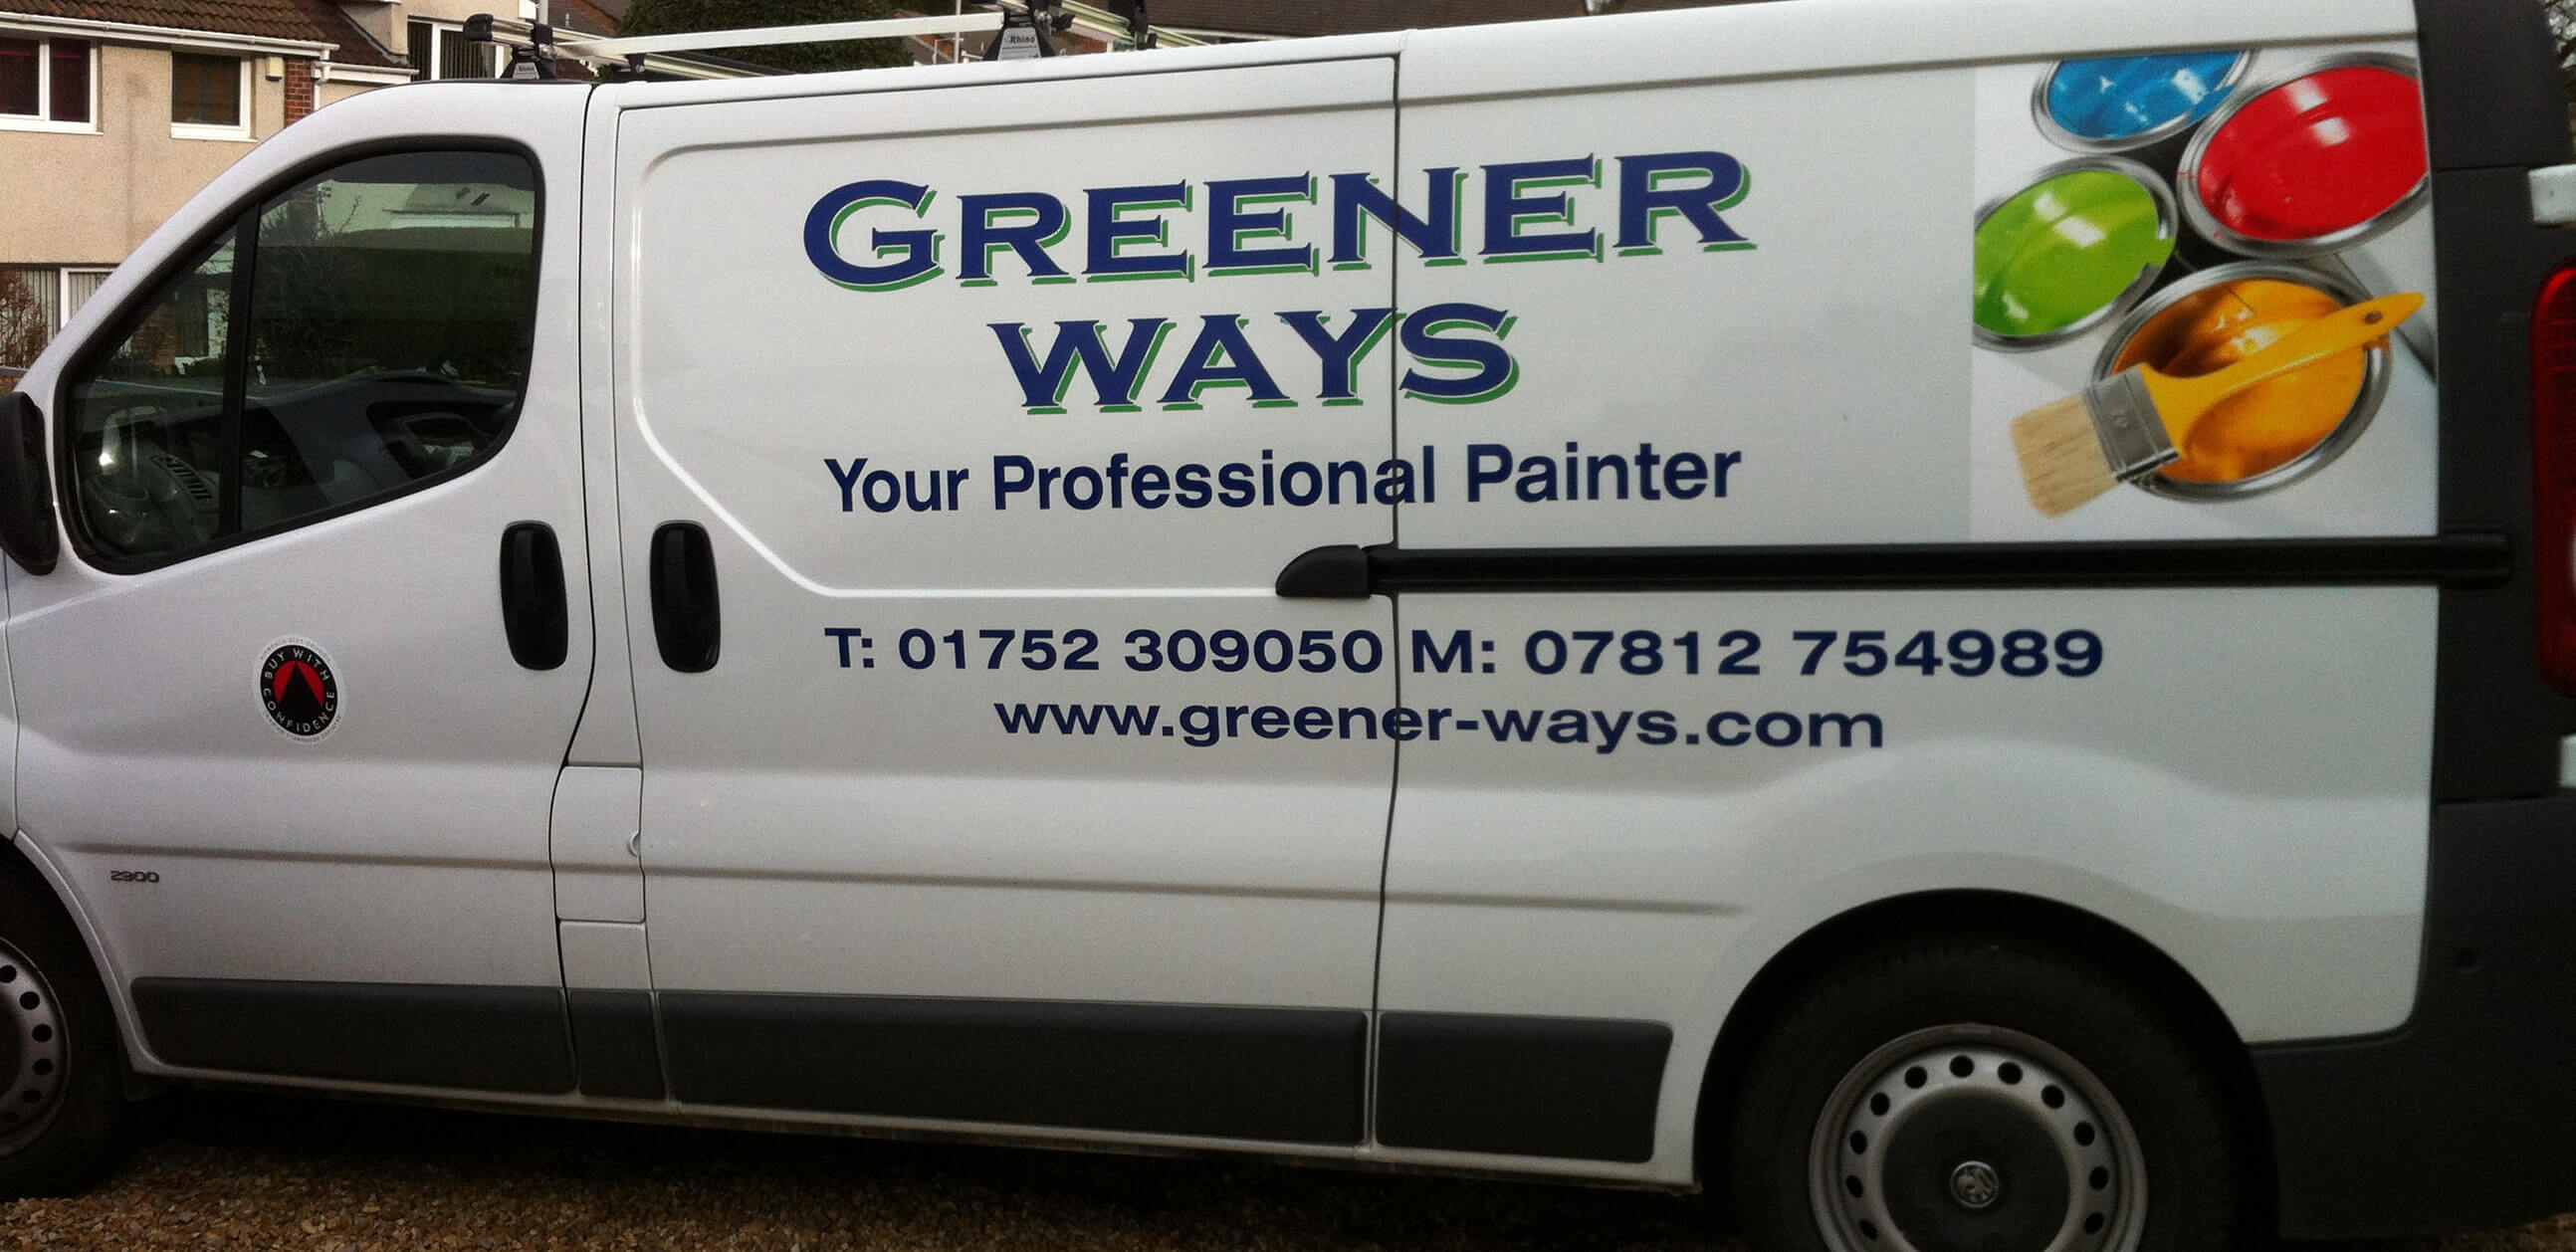 About Greener-Ways, Plymouth